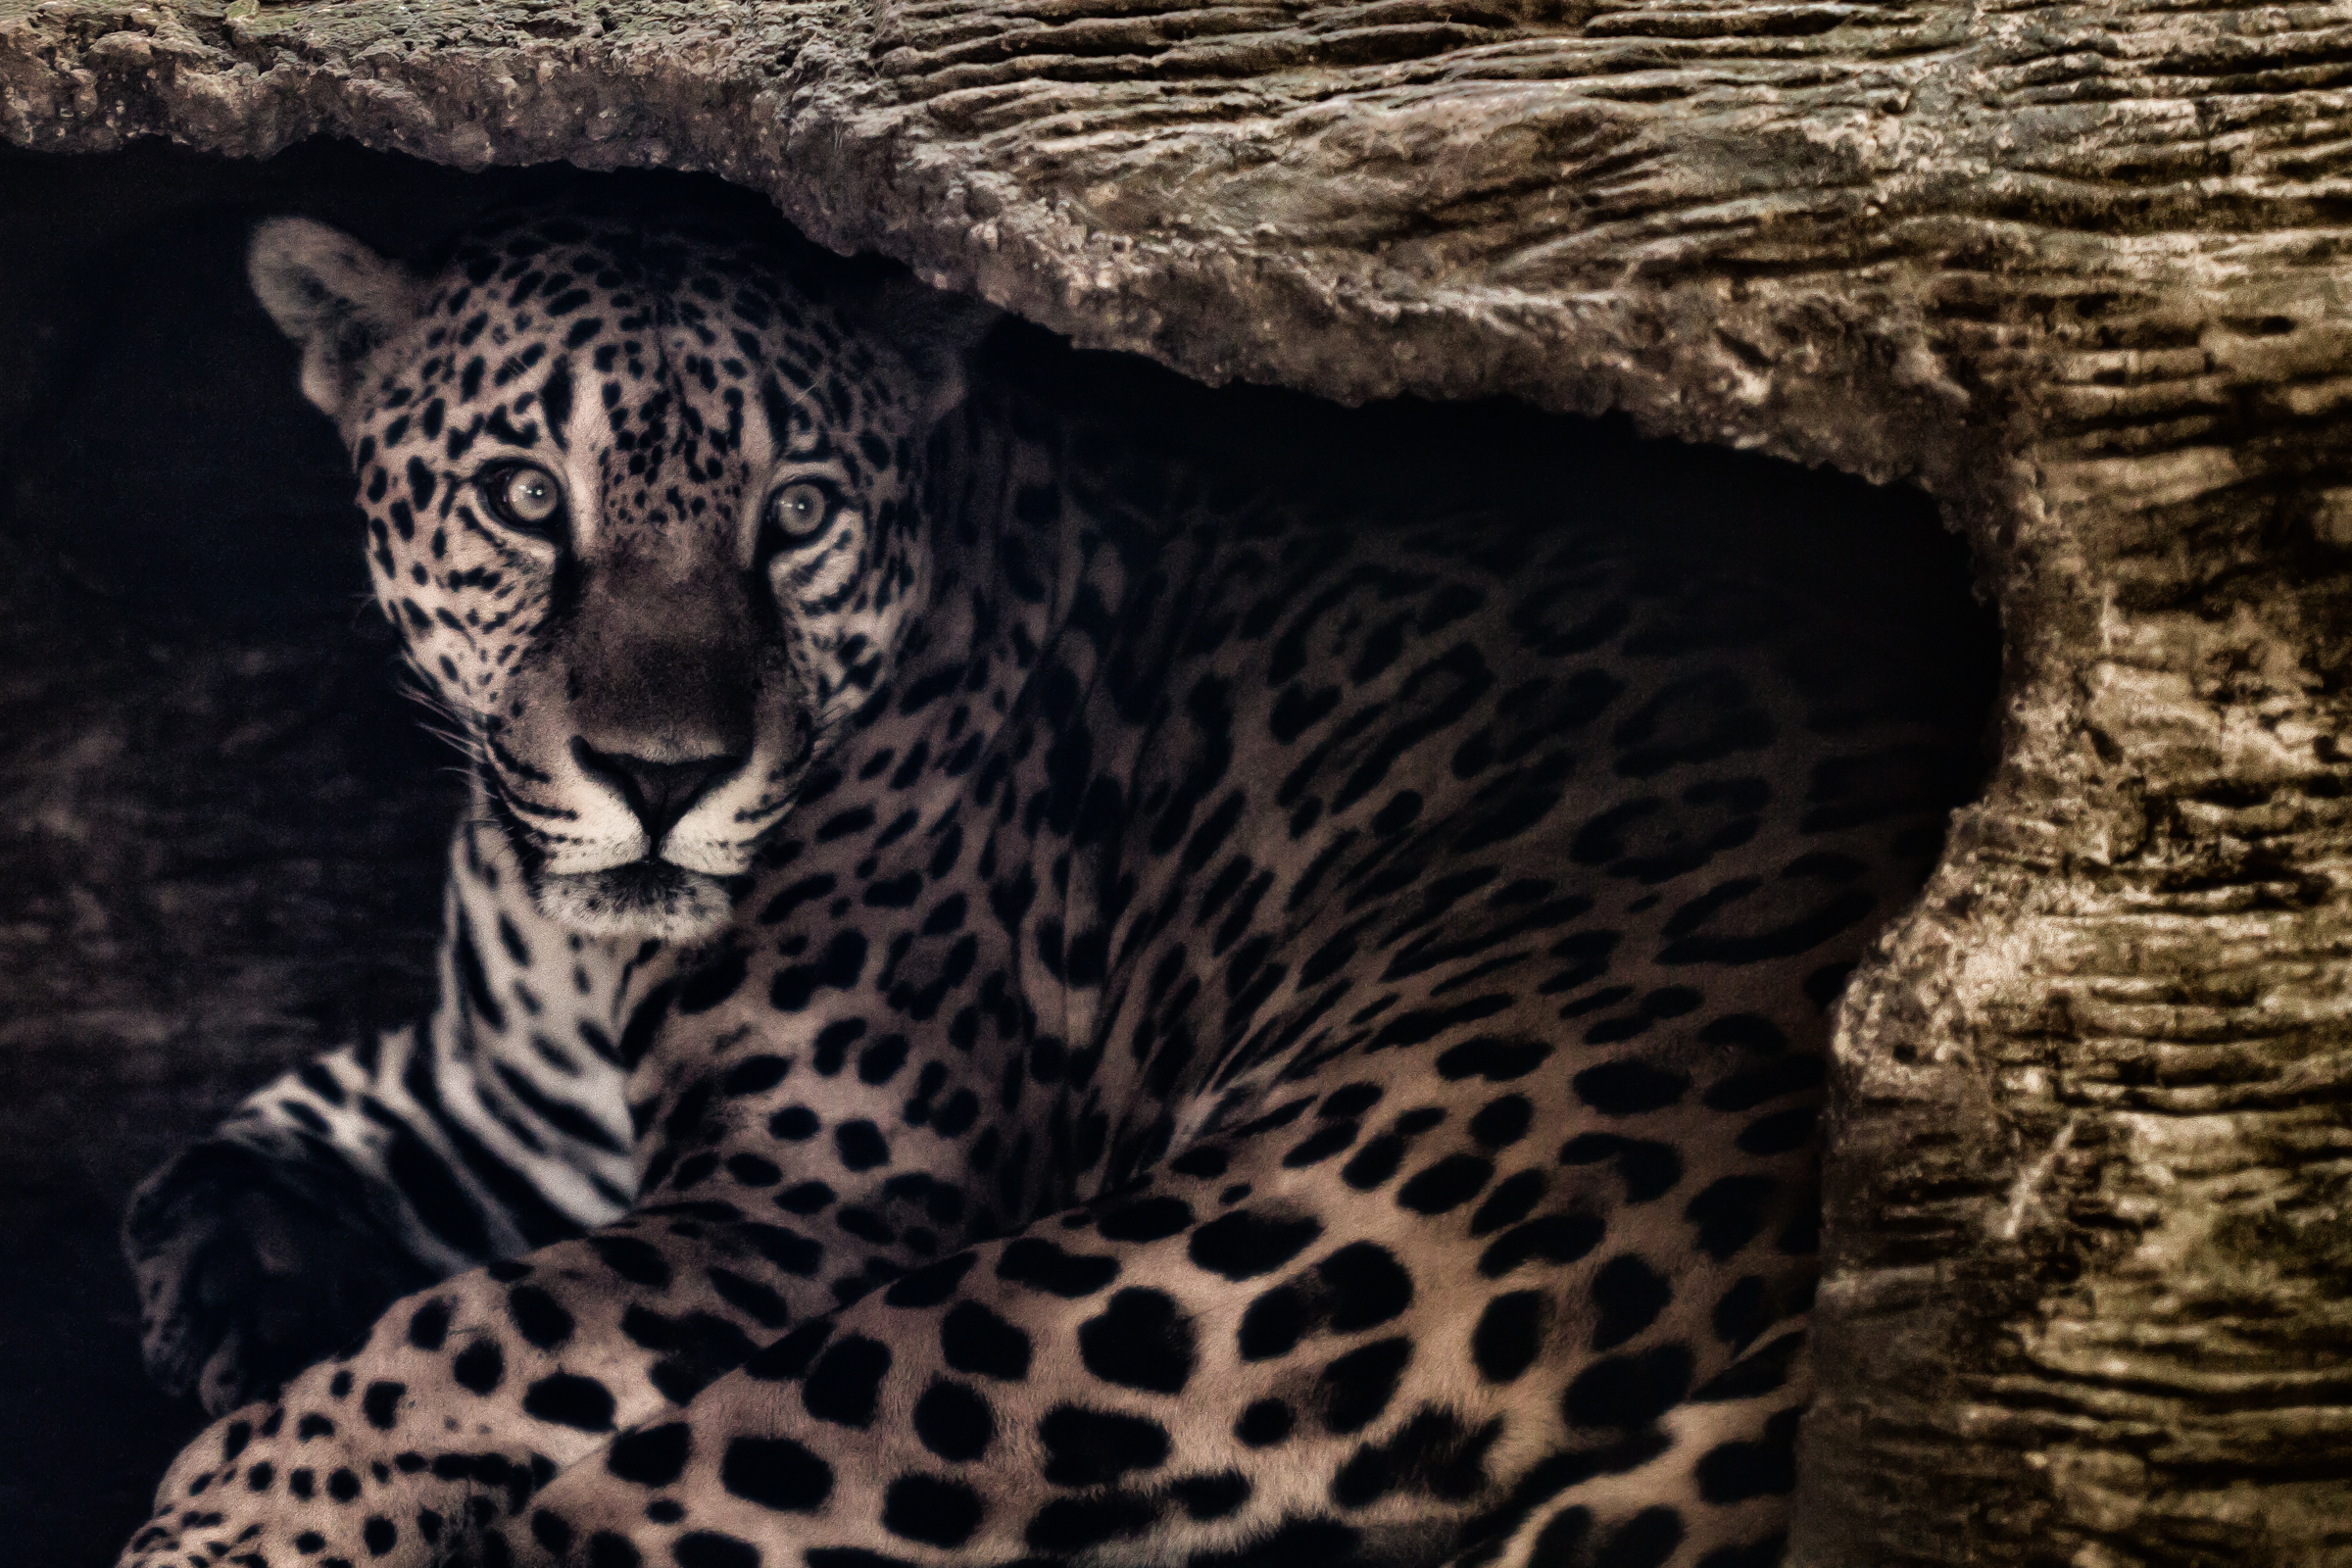 The jaguar and his mighty spots